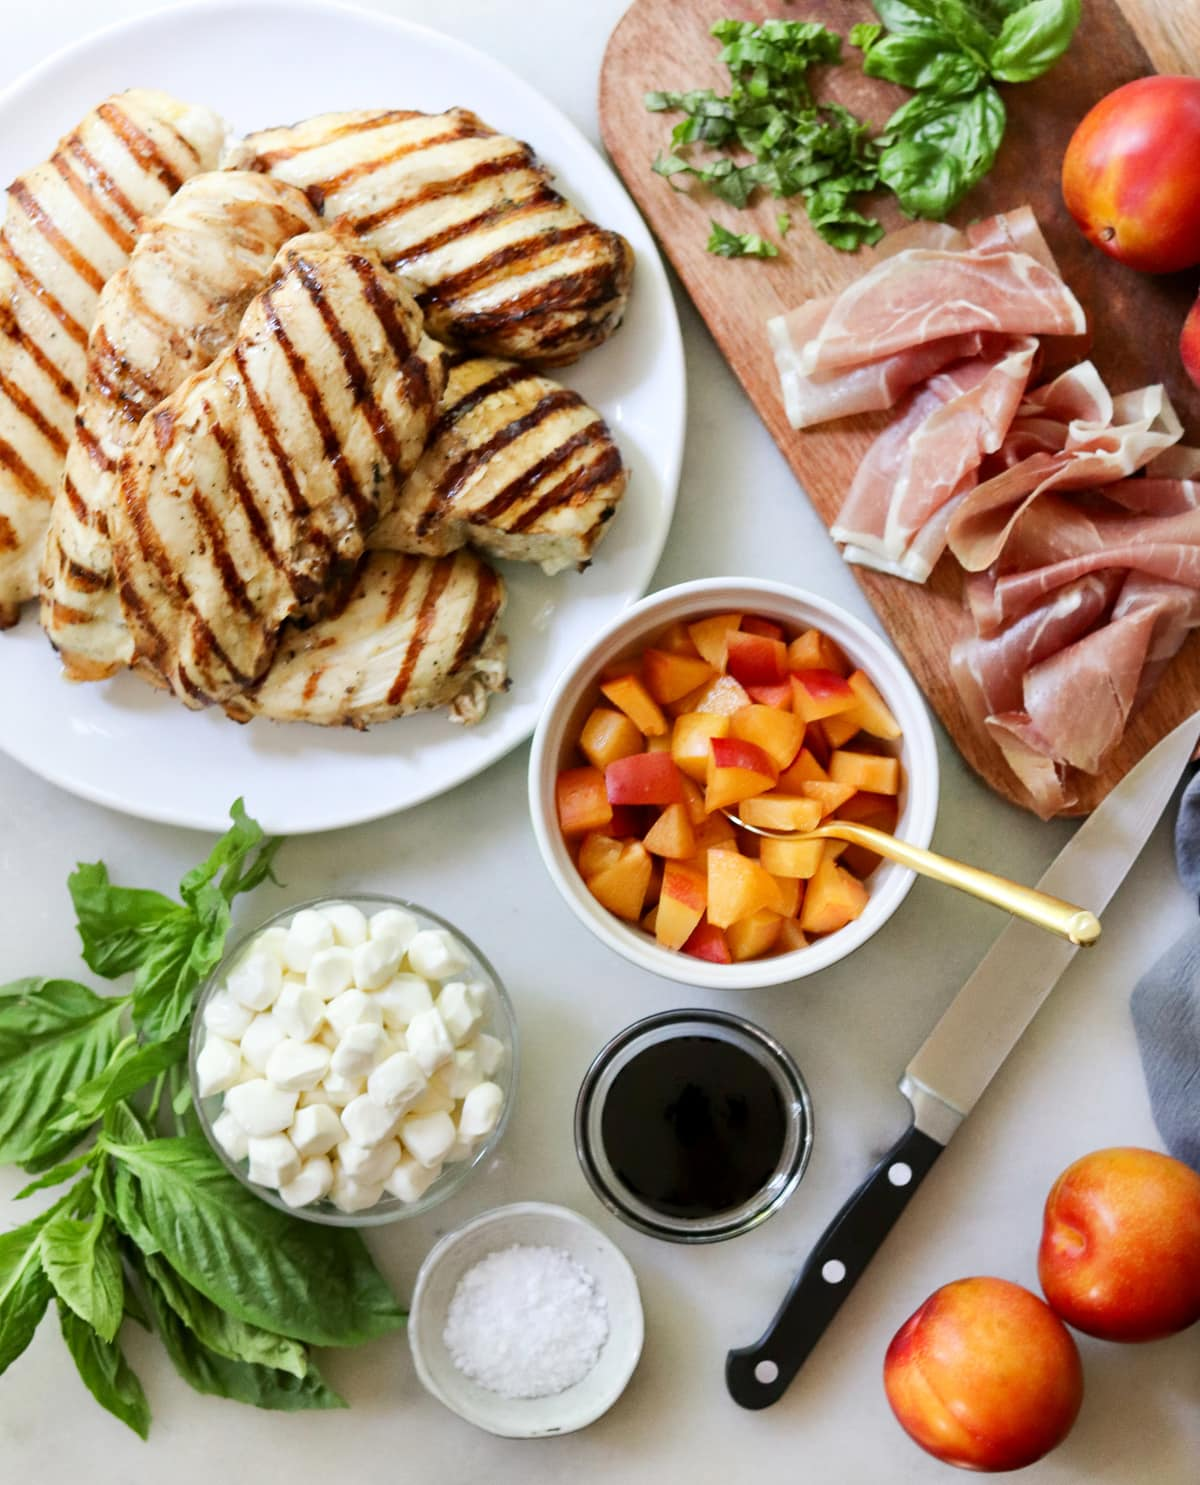 A white marble board with the recipe ingredients laid out: Grilled chicken breasts, prosciutto, basil, mozzarella pears, balsamic vinegar, and a bowl of diced apriums.